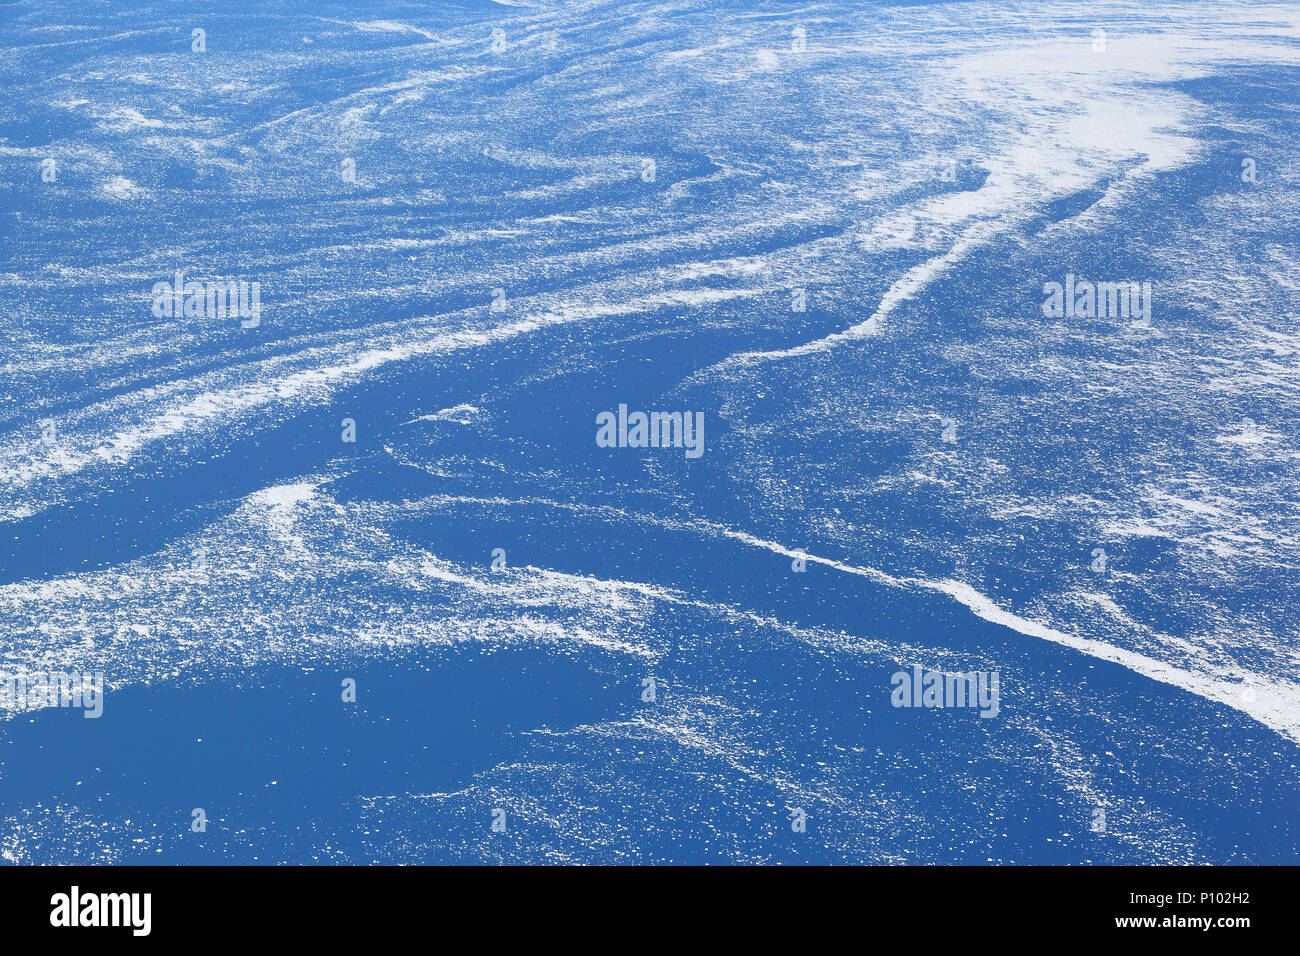 Aerial view of floating sea ice caught in marine currents off the eastern coast of Canada. - Stock Image